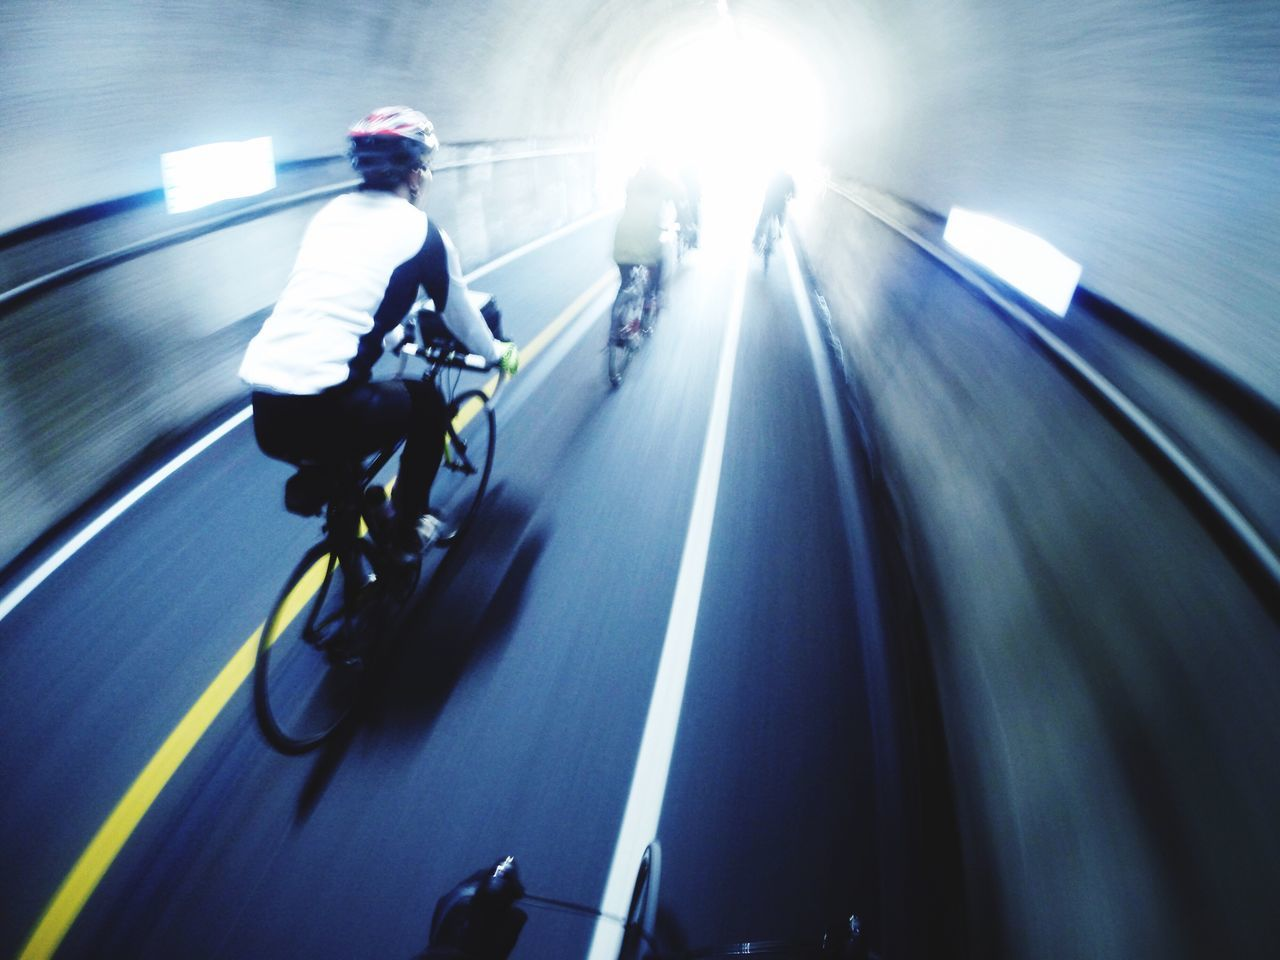 People Riding Bicycle In Tunnel